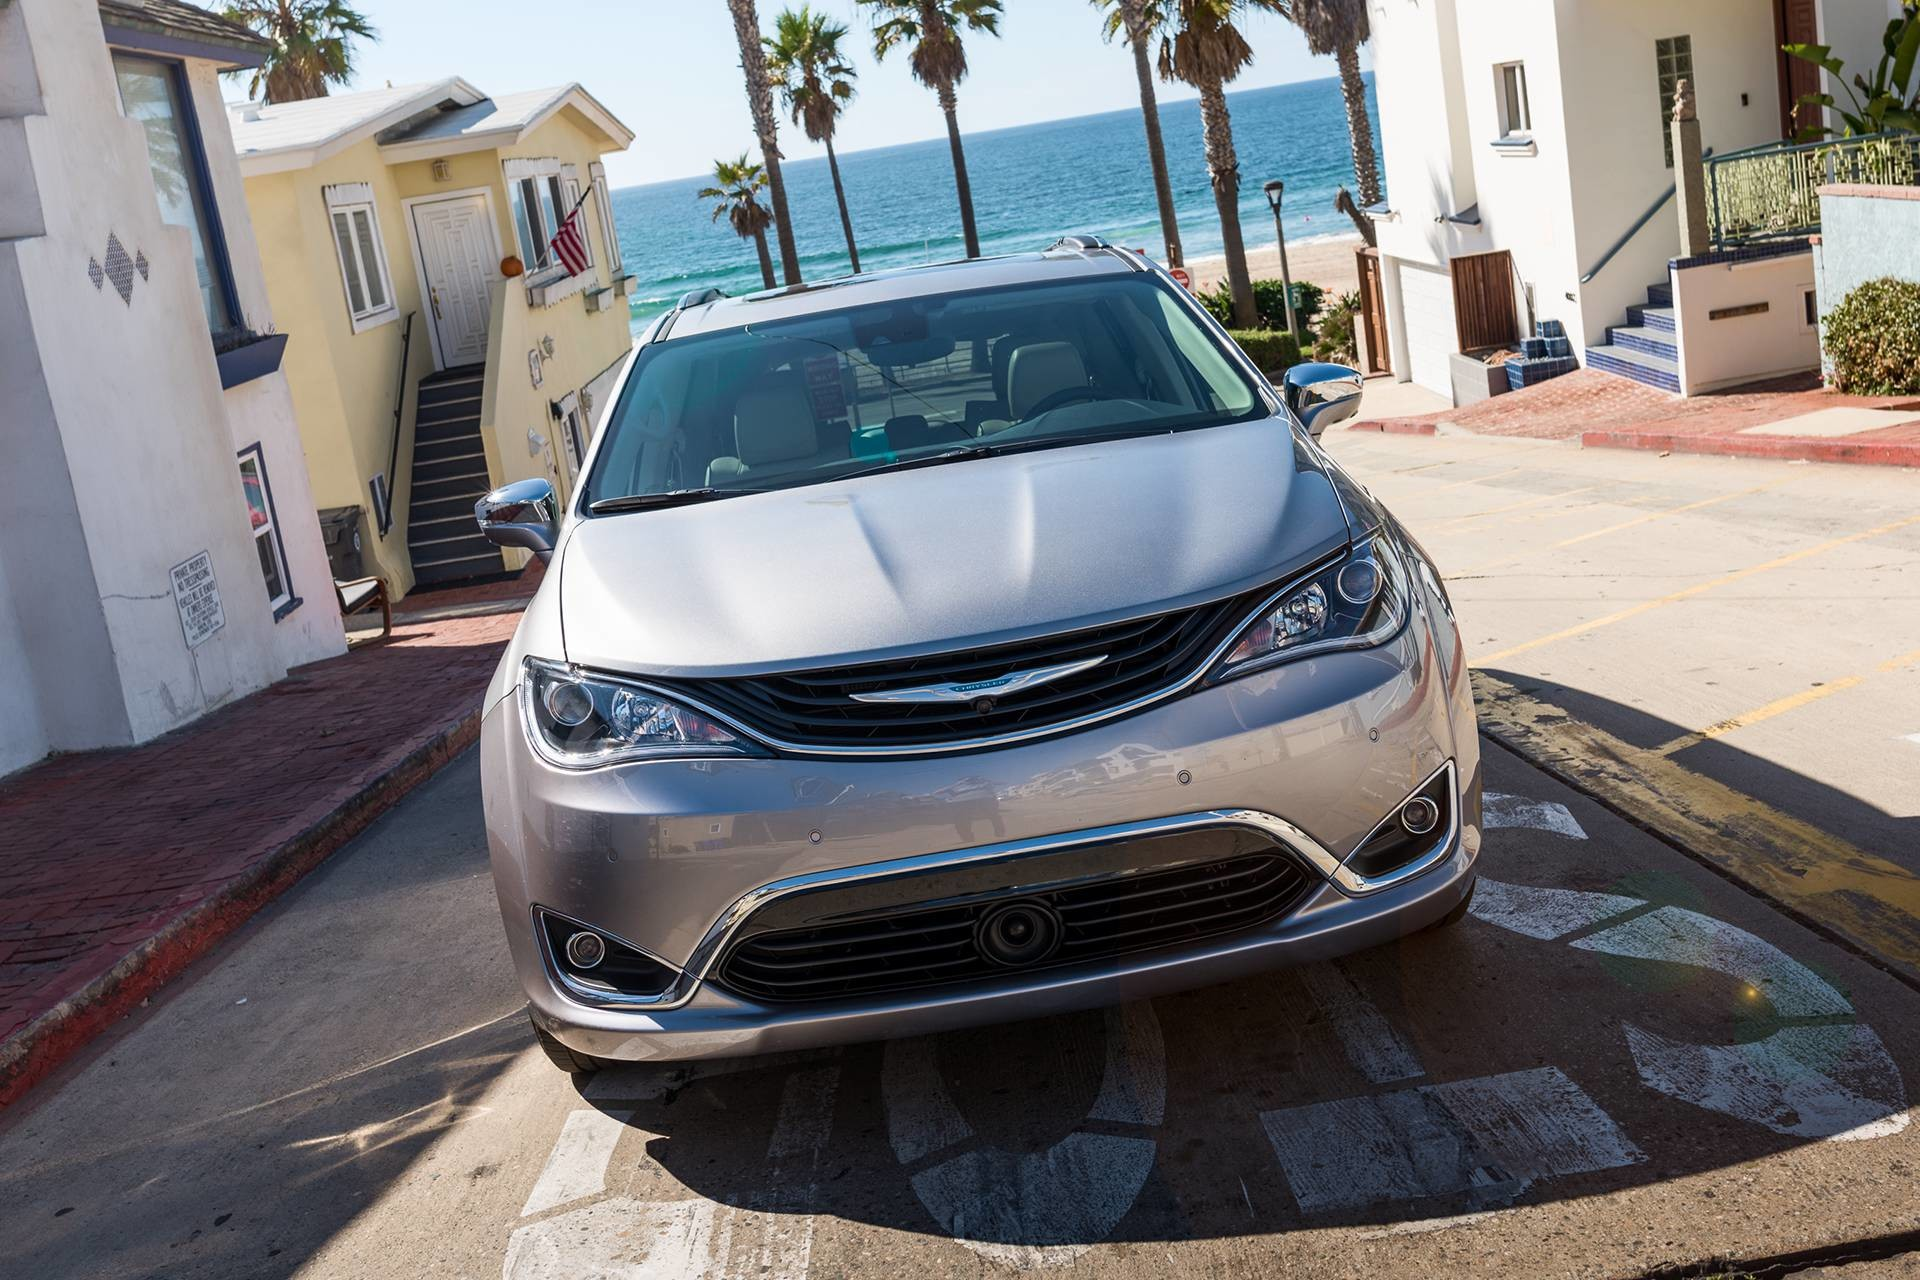 2019 Chrysler Pacifica Hybrid exterior front view showing LED daytime running lights